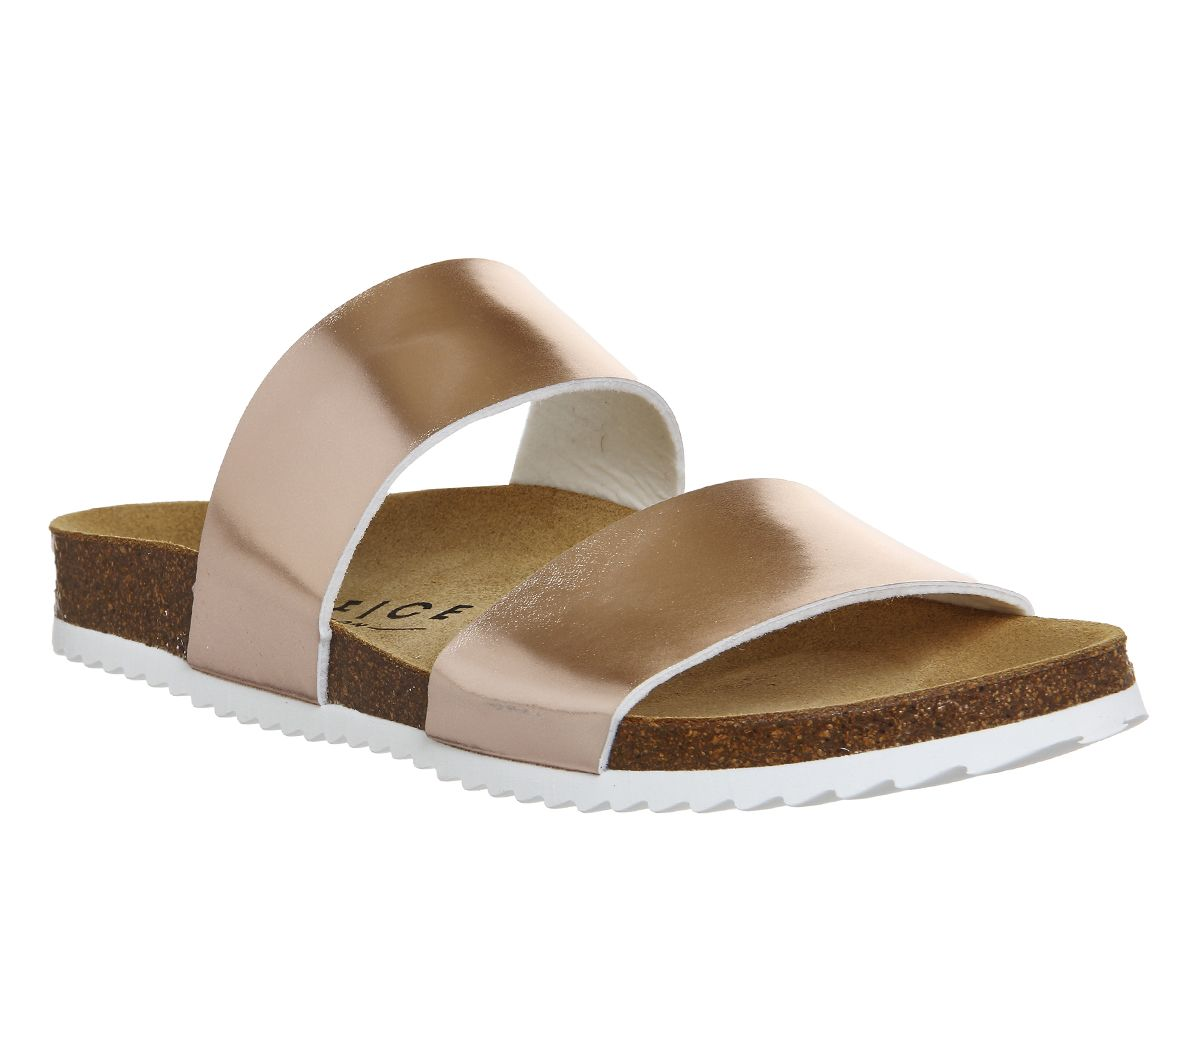 5f51abaa89a7 Office Oslo 2 Rose Gold - Sandals